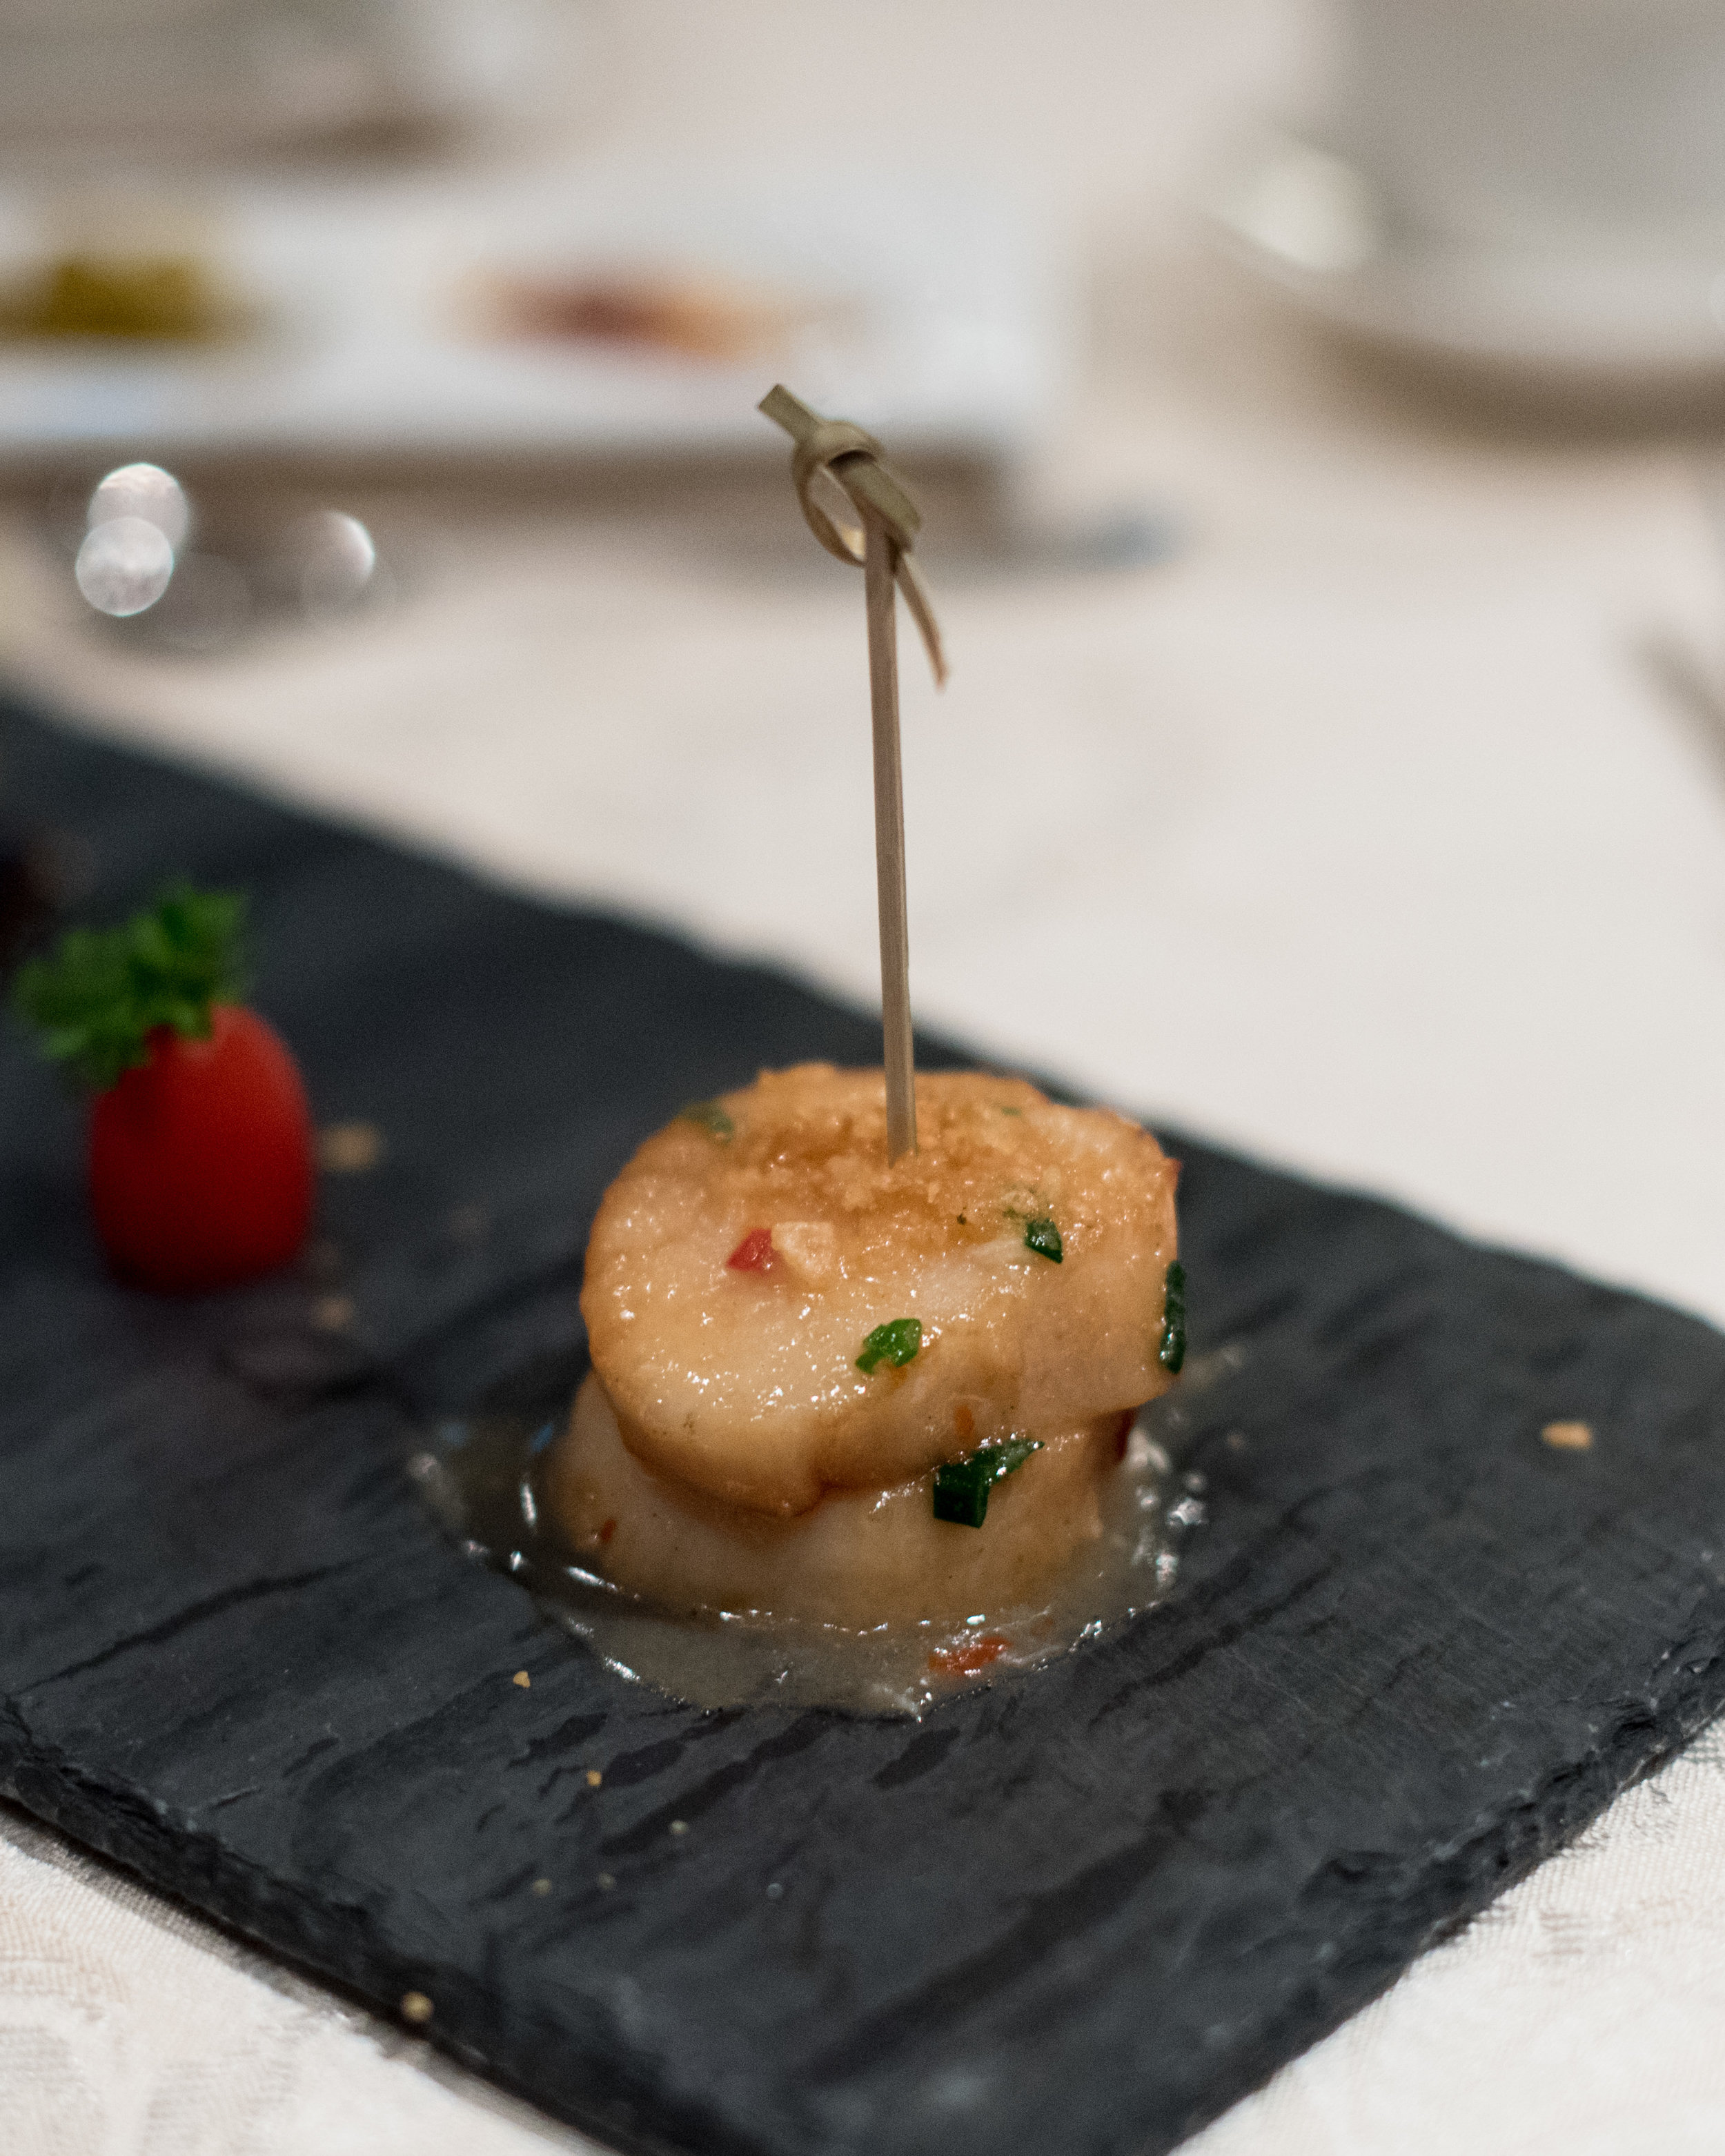 Japanese Style Sea Perch Fillet in Sake Sauce served with Fresh Scallops in Pepper and Salt (椒鹽鮮元貝伴日式鱸魚)